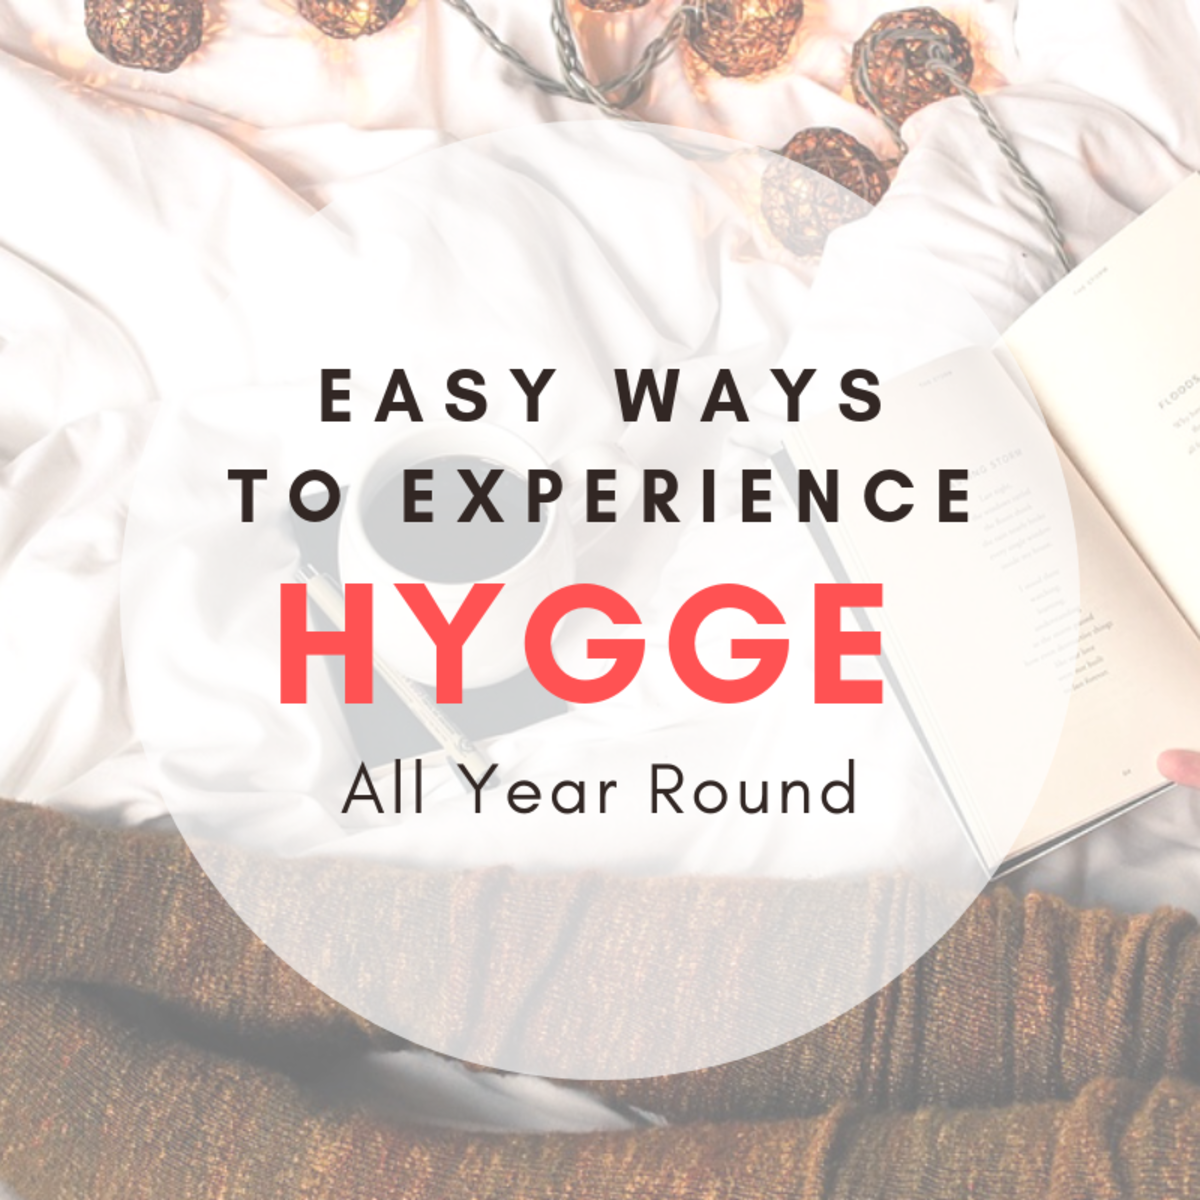 Easy Ways to Experience Hygge All Year Round